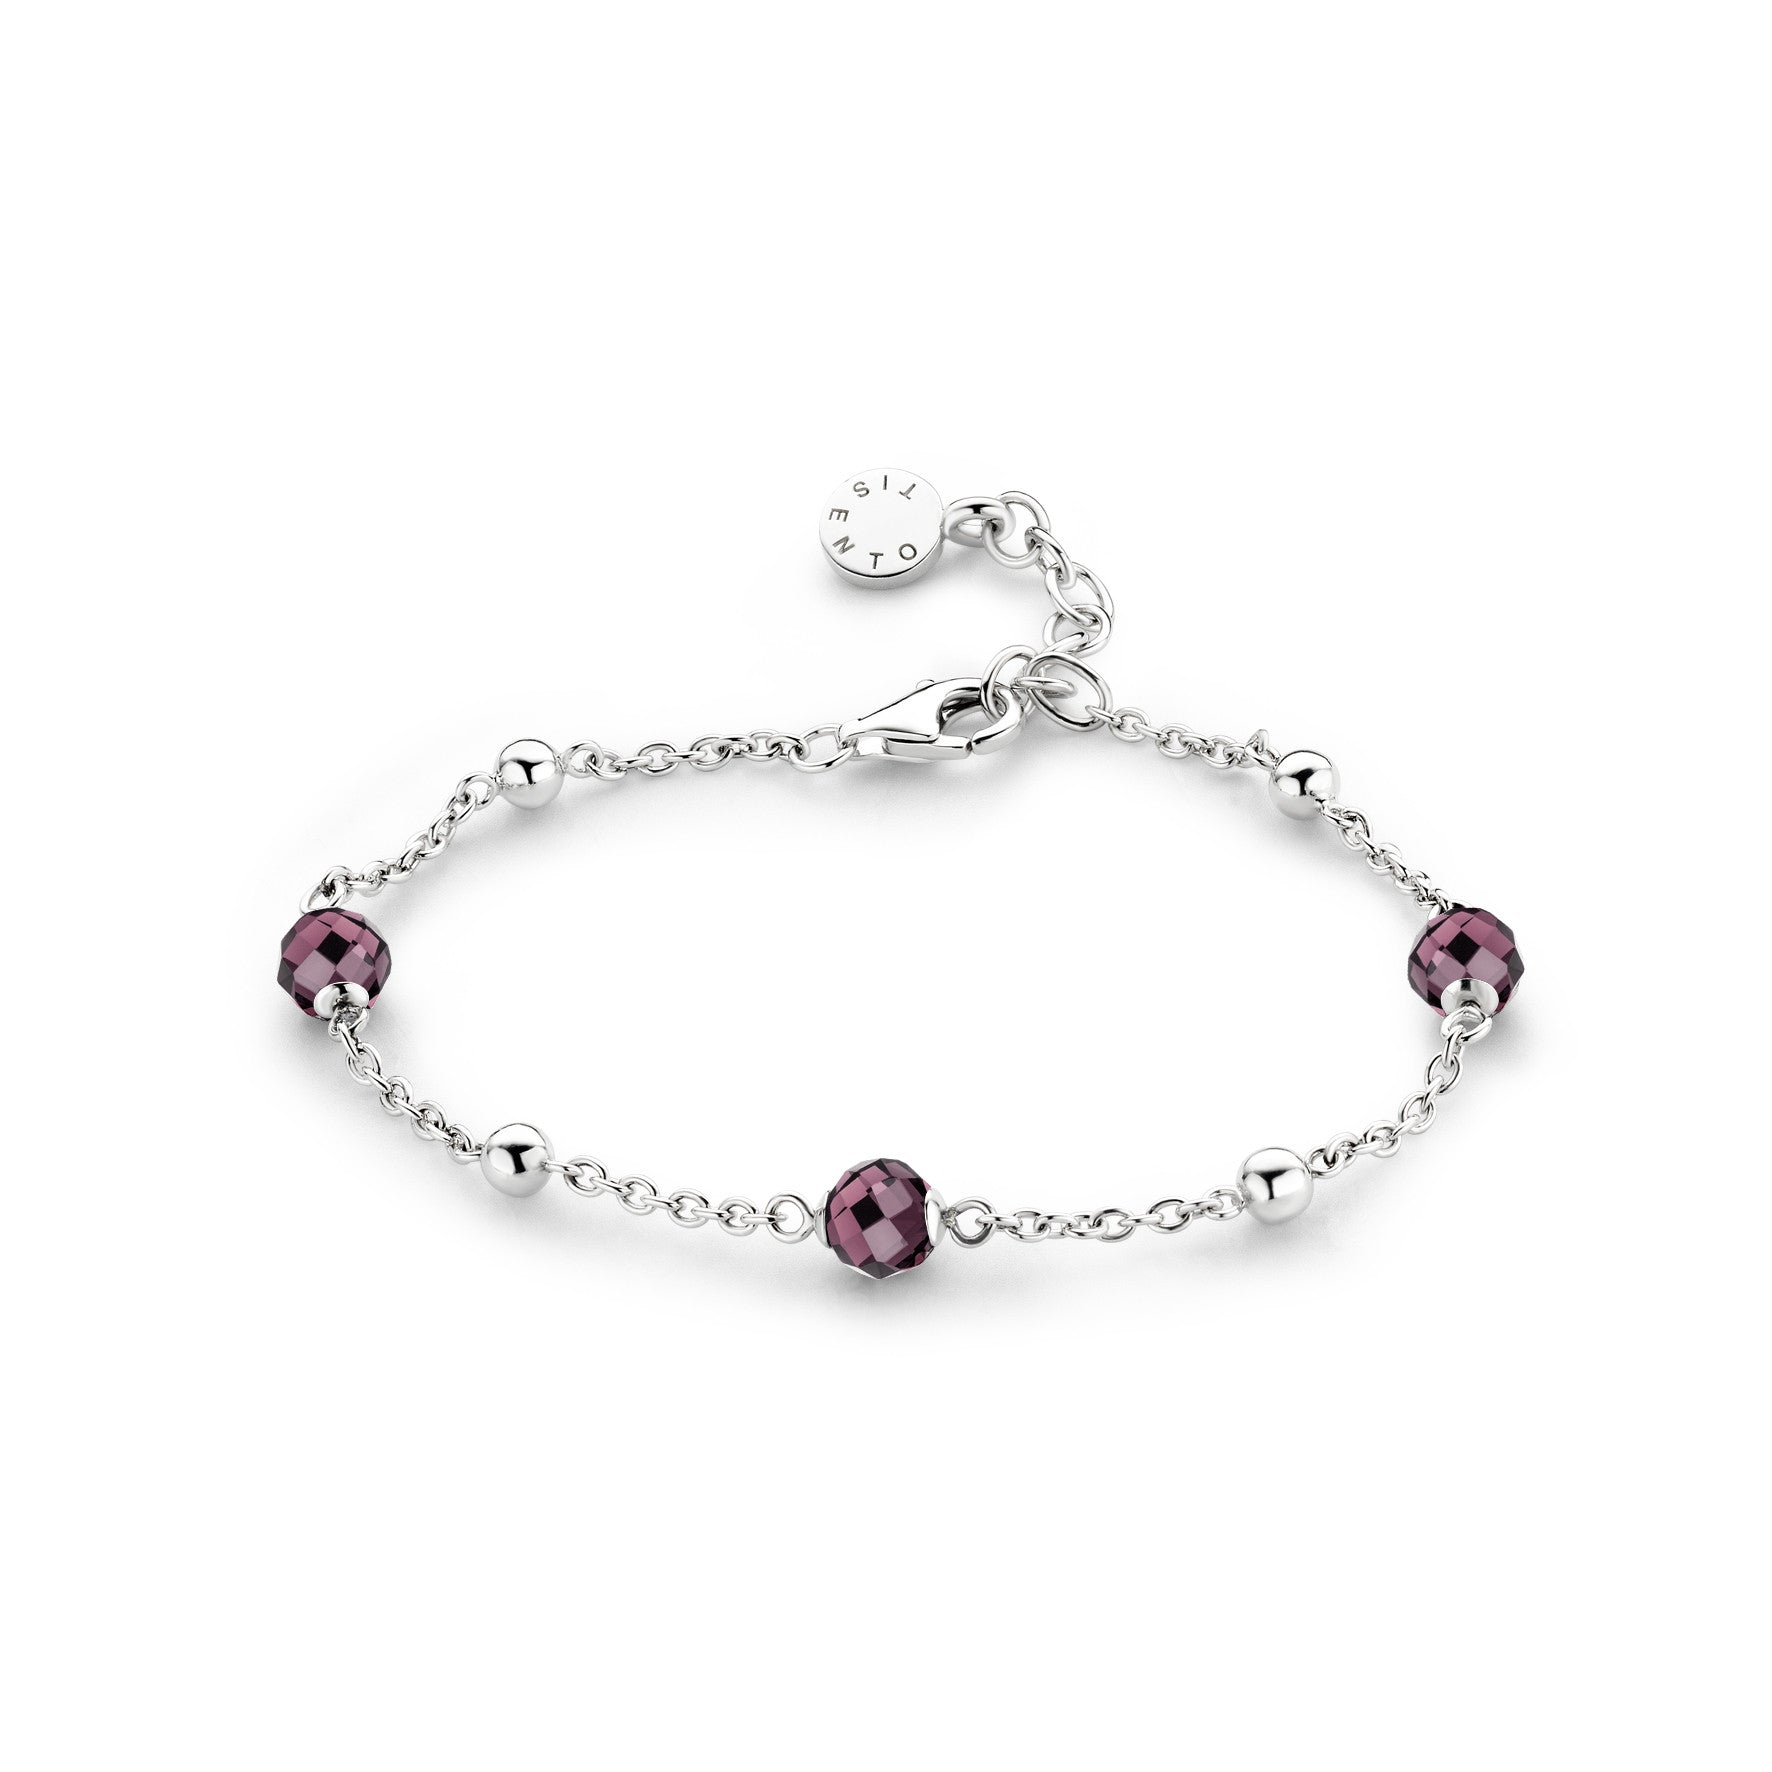 Ti Sento Bracelet Silver And Burgundy Cubic Zirconia